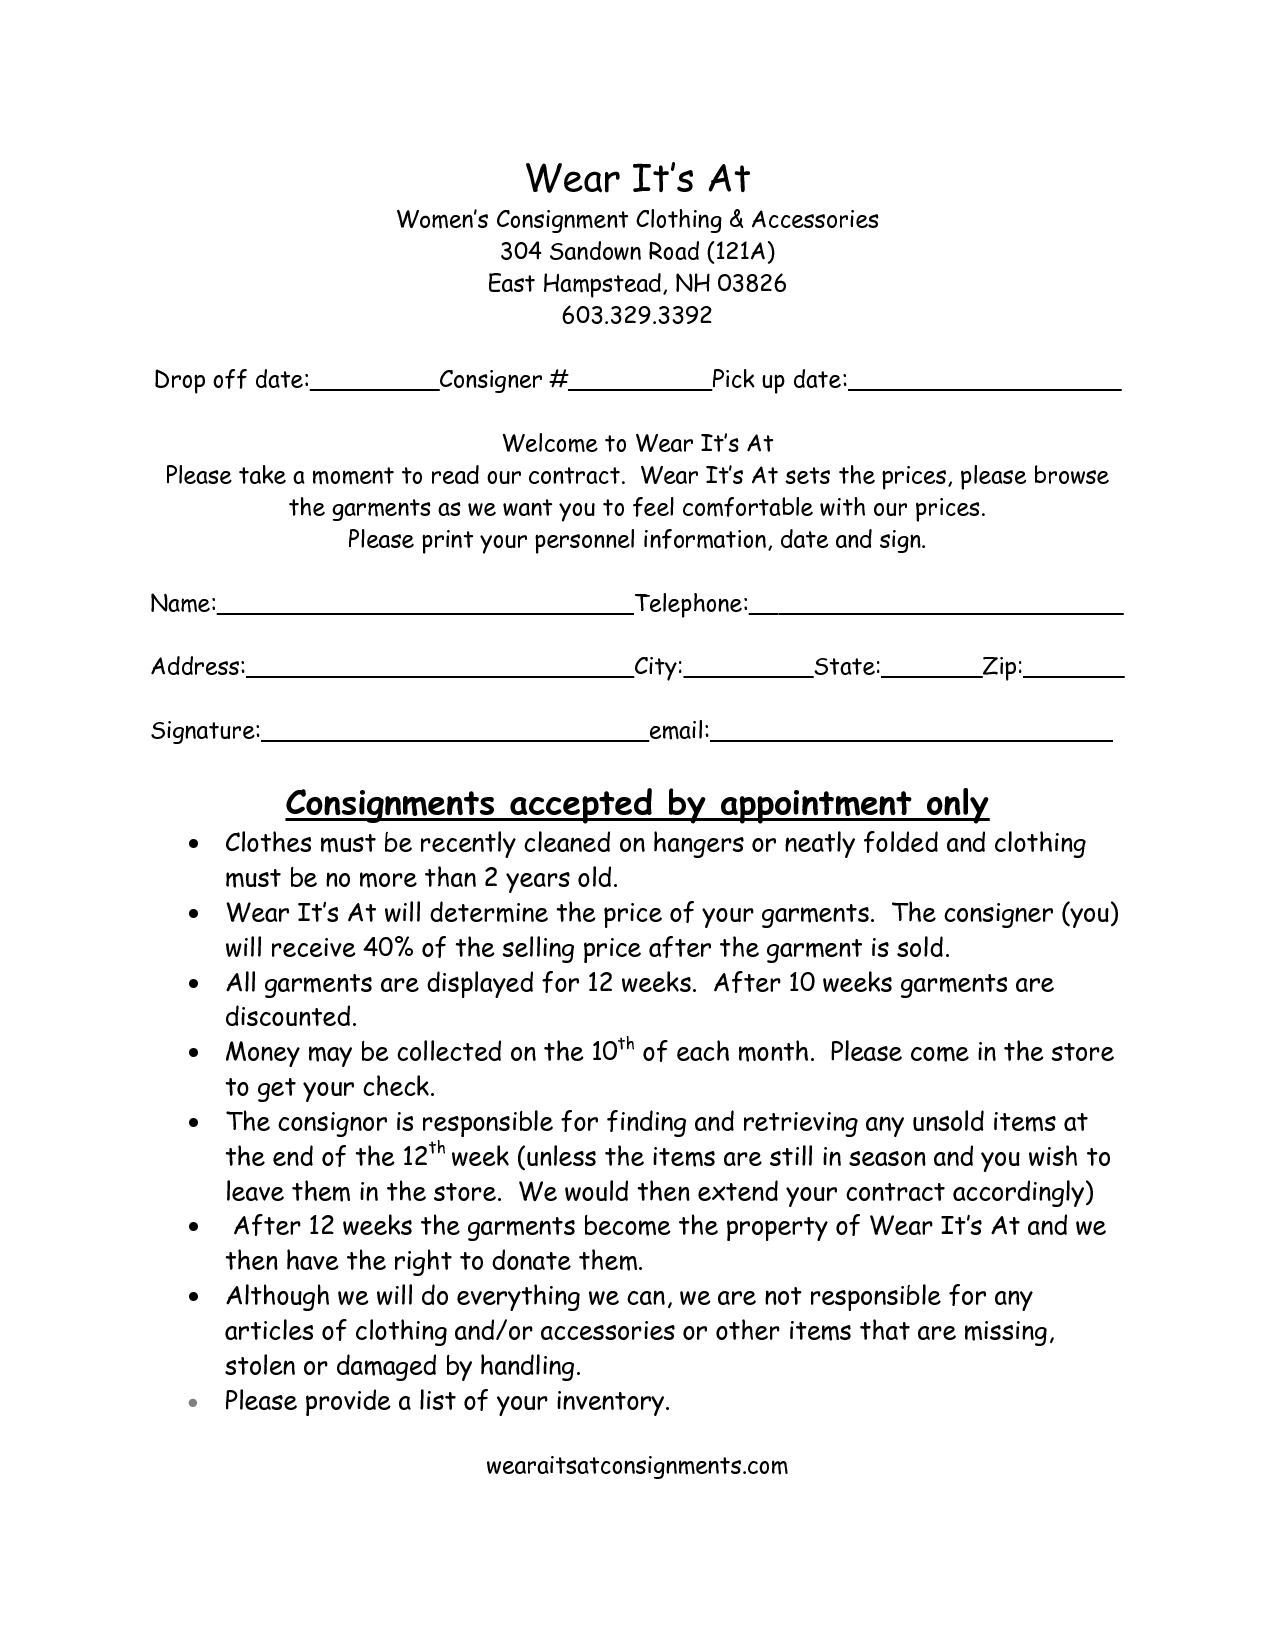 Clothing Consignment Contract Template | Scope Of Work Template  Free Consignment Contract Template